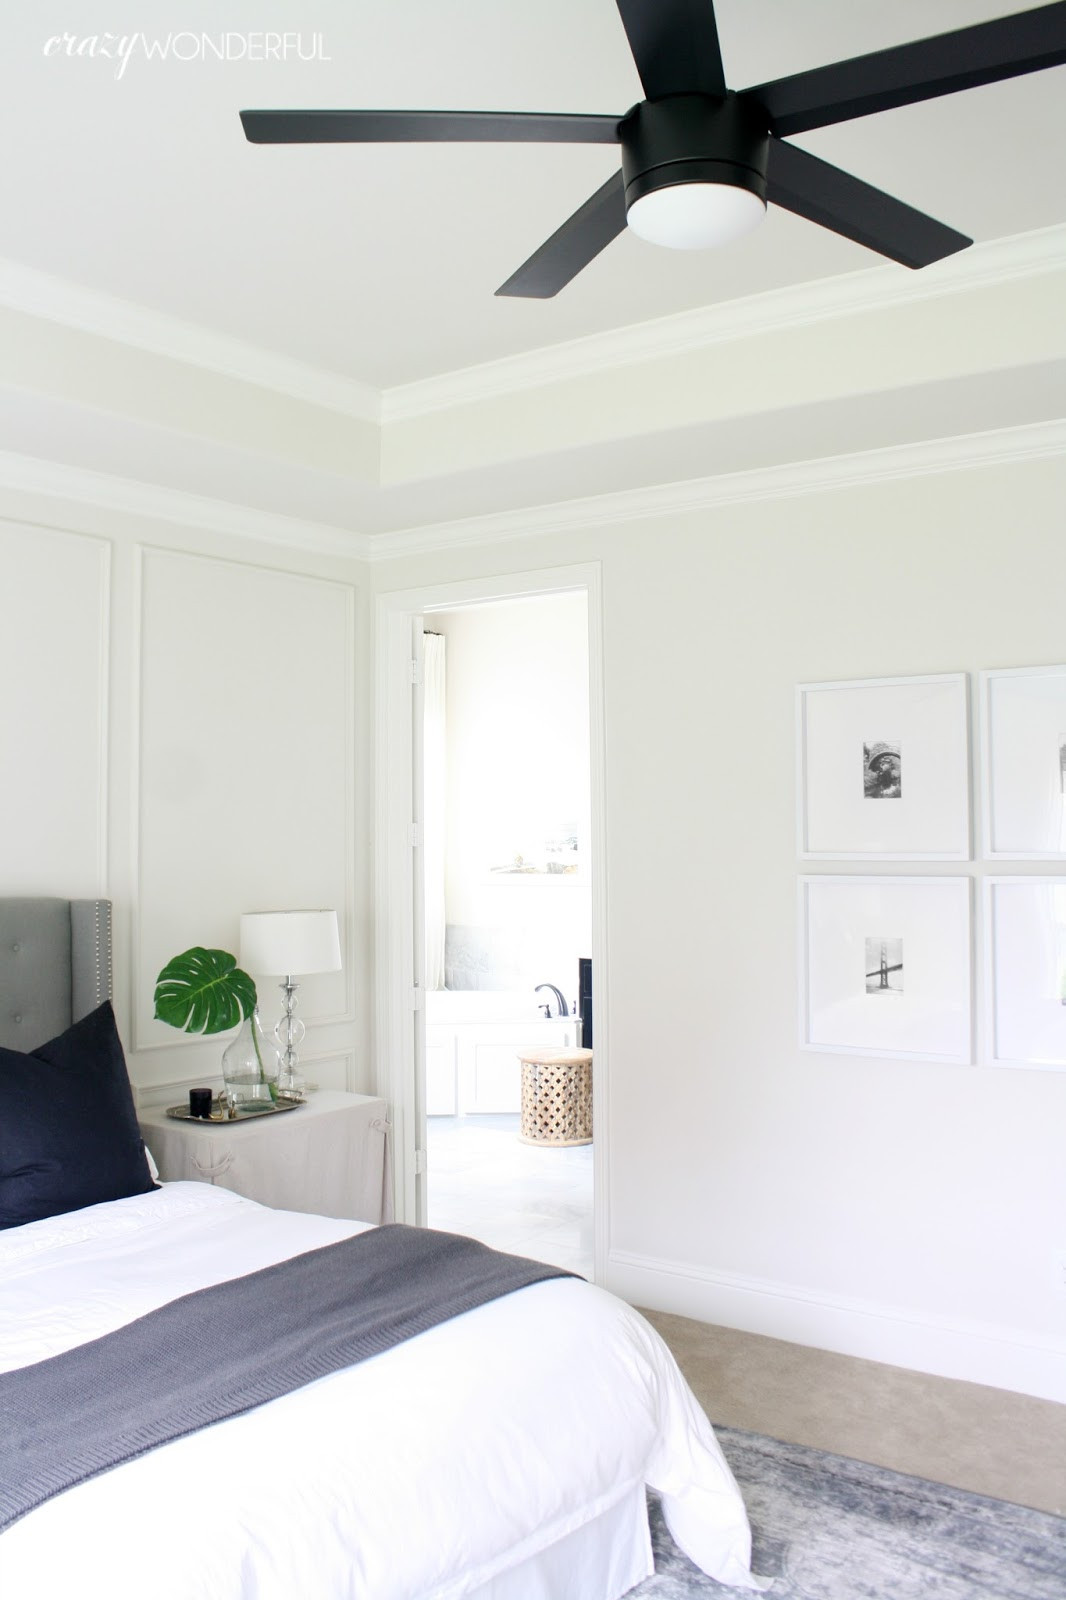 Best ideas about Bedroom Ceiling Fan . Save or Pin bedroom ceiling fan Crazy Wonderful Now.